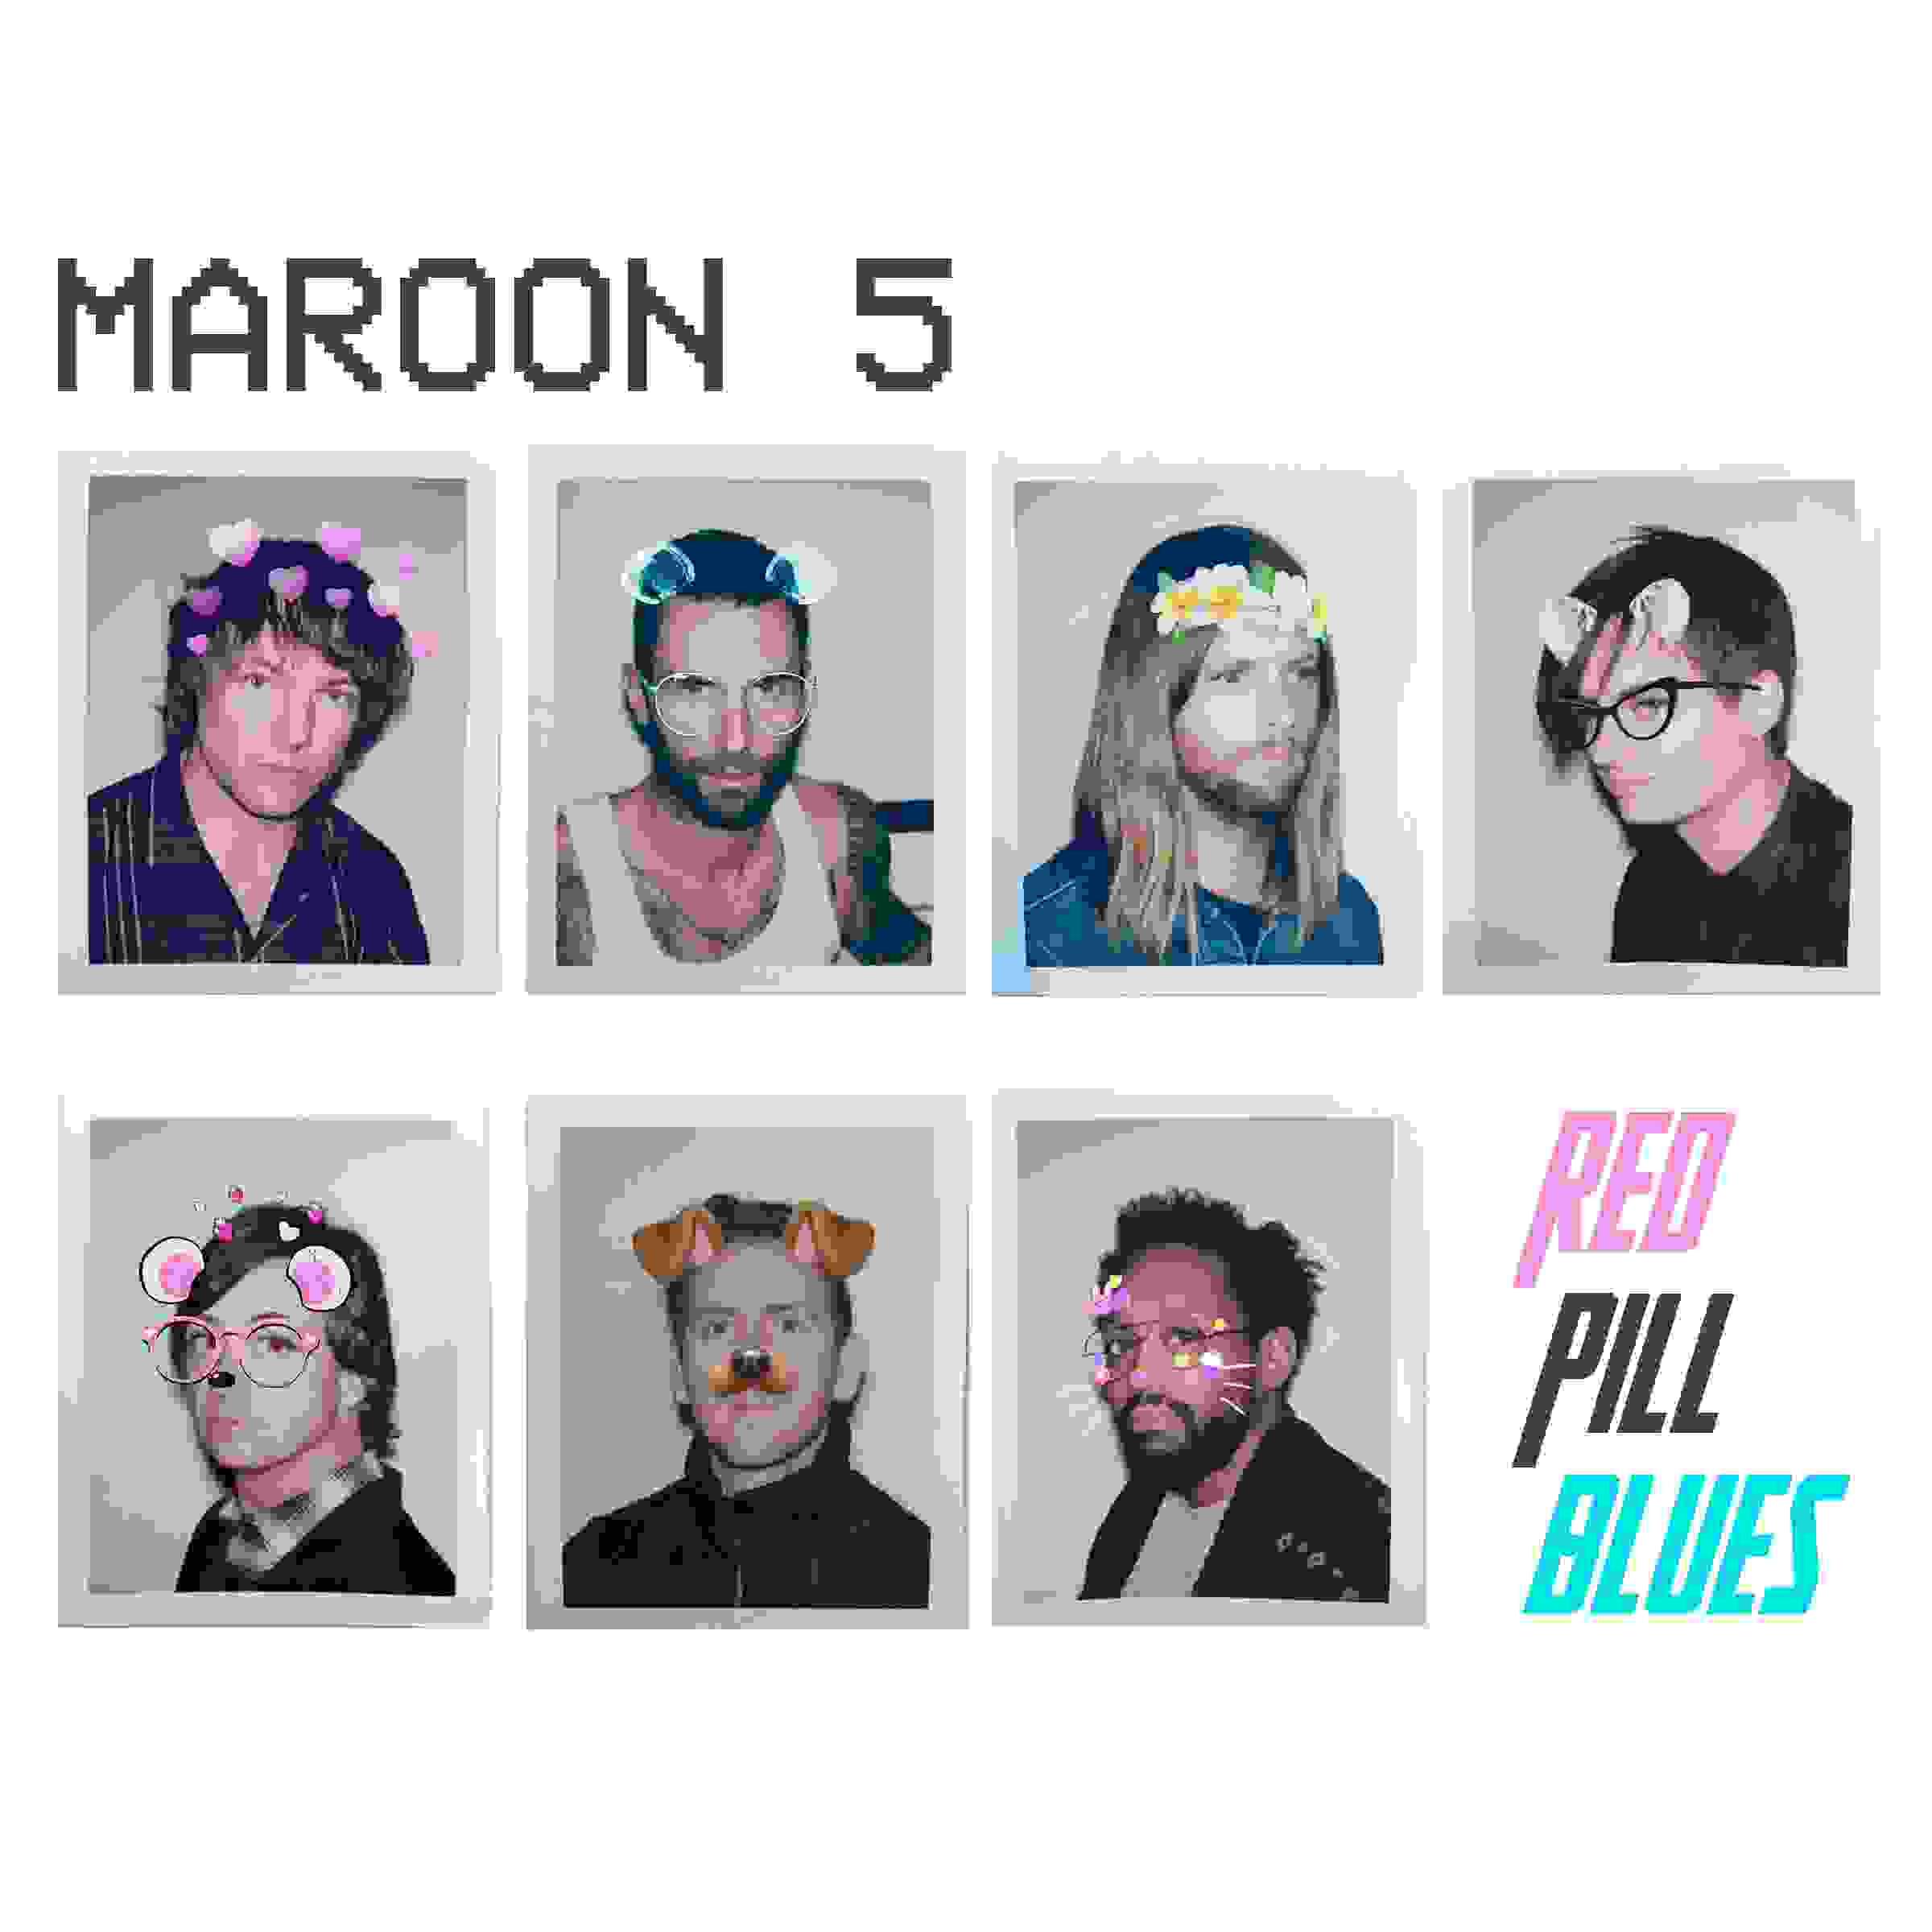 CD Shop - MAROON 5 RED PILL BLUES